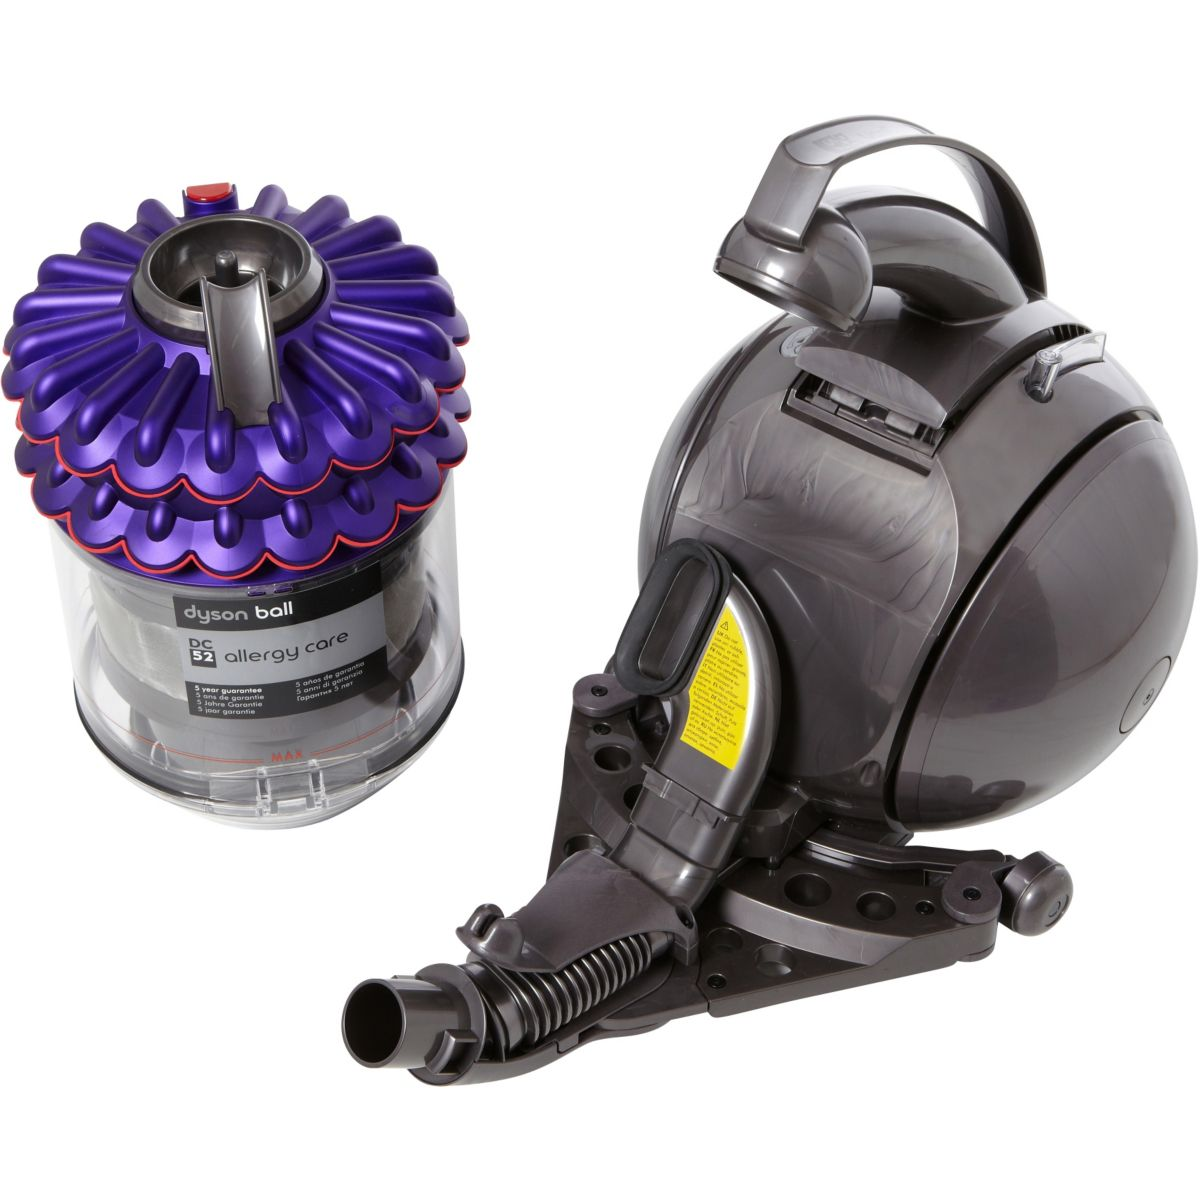 dyson dc52 allergy care aspirateur tra neau sans sac comparer avec. Black Bedroom Furniture Sets. Home Design Ideas